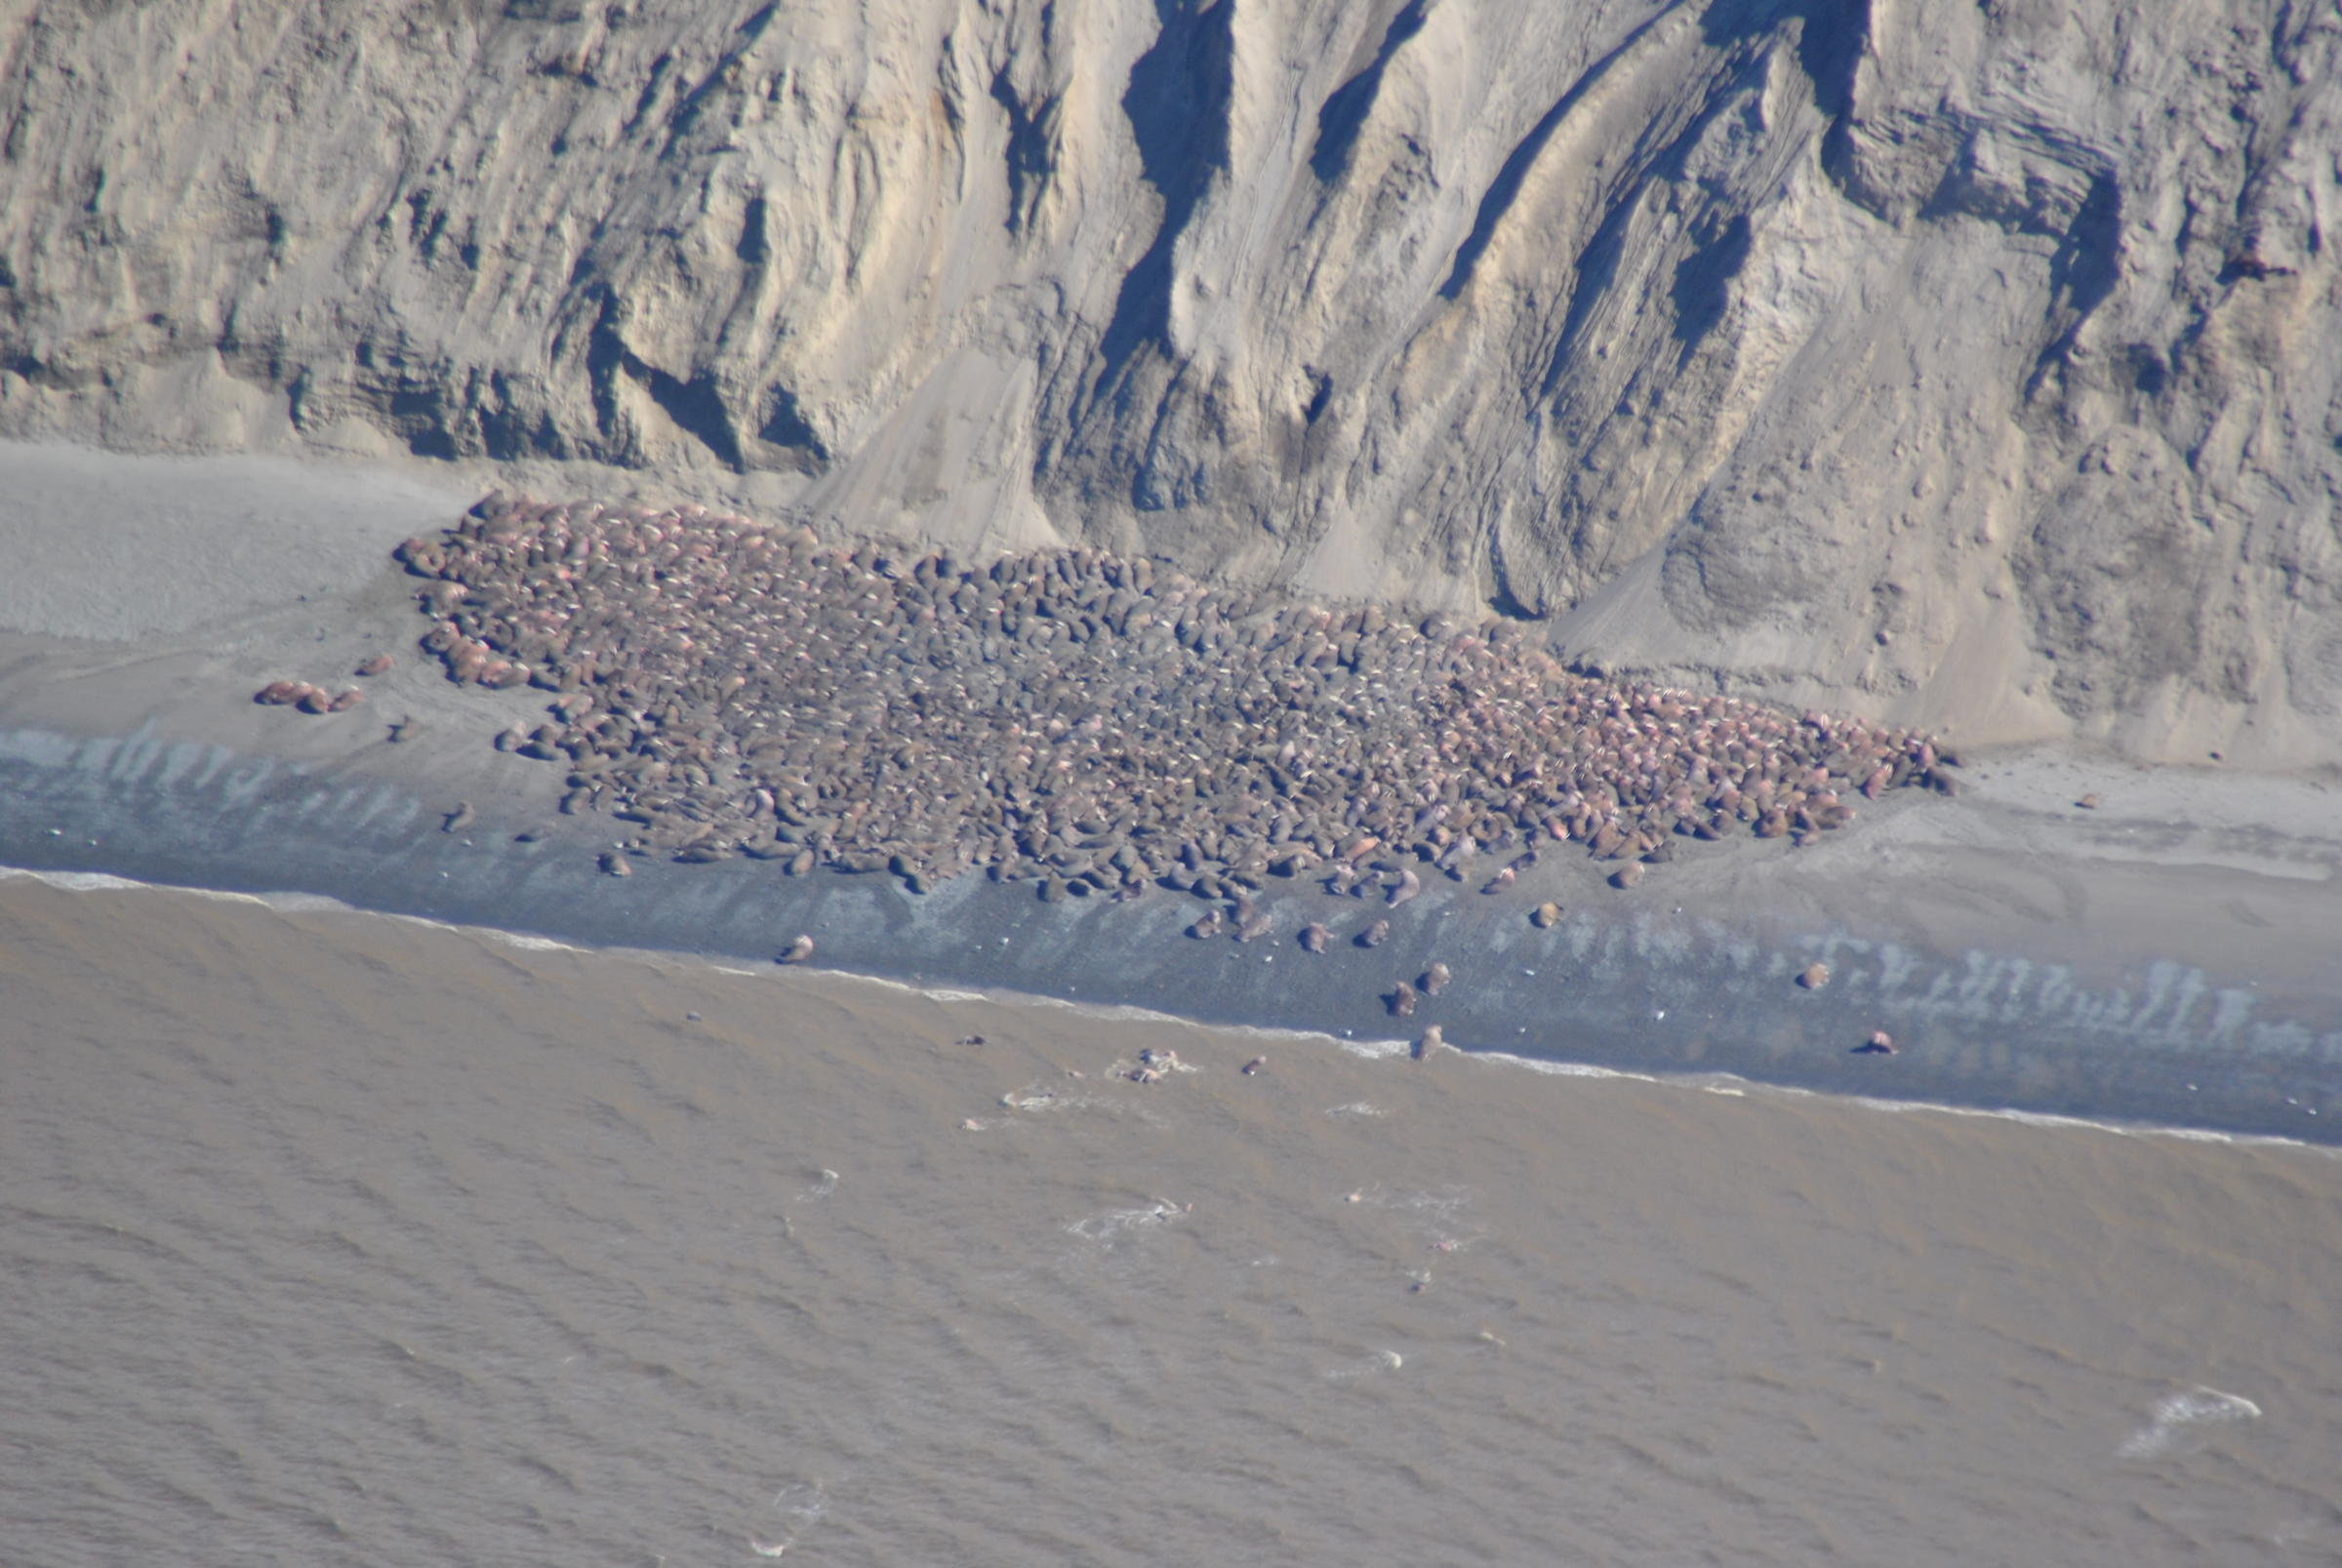 These walruses are hauled out at Cape Grieg, a spot in between Egegik and Ugashik on the Alaska Peninsula. This appears to be a new haul out spot, and biologist aren't sure why it was picked or how long the walruses will stick around. (Photo courtesy of USFWS)